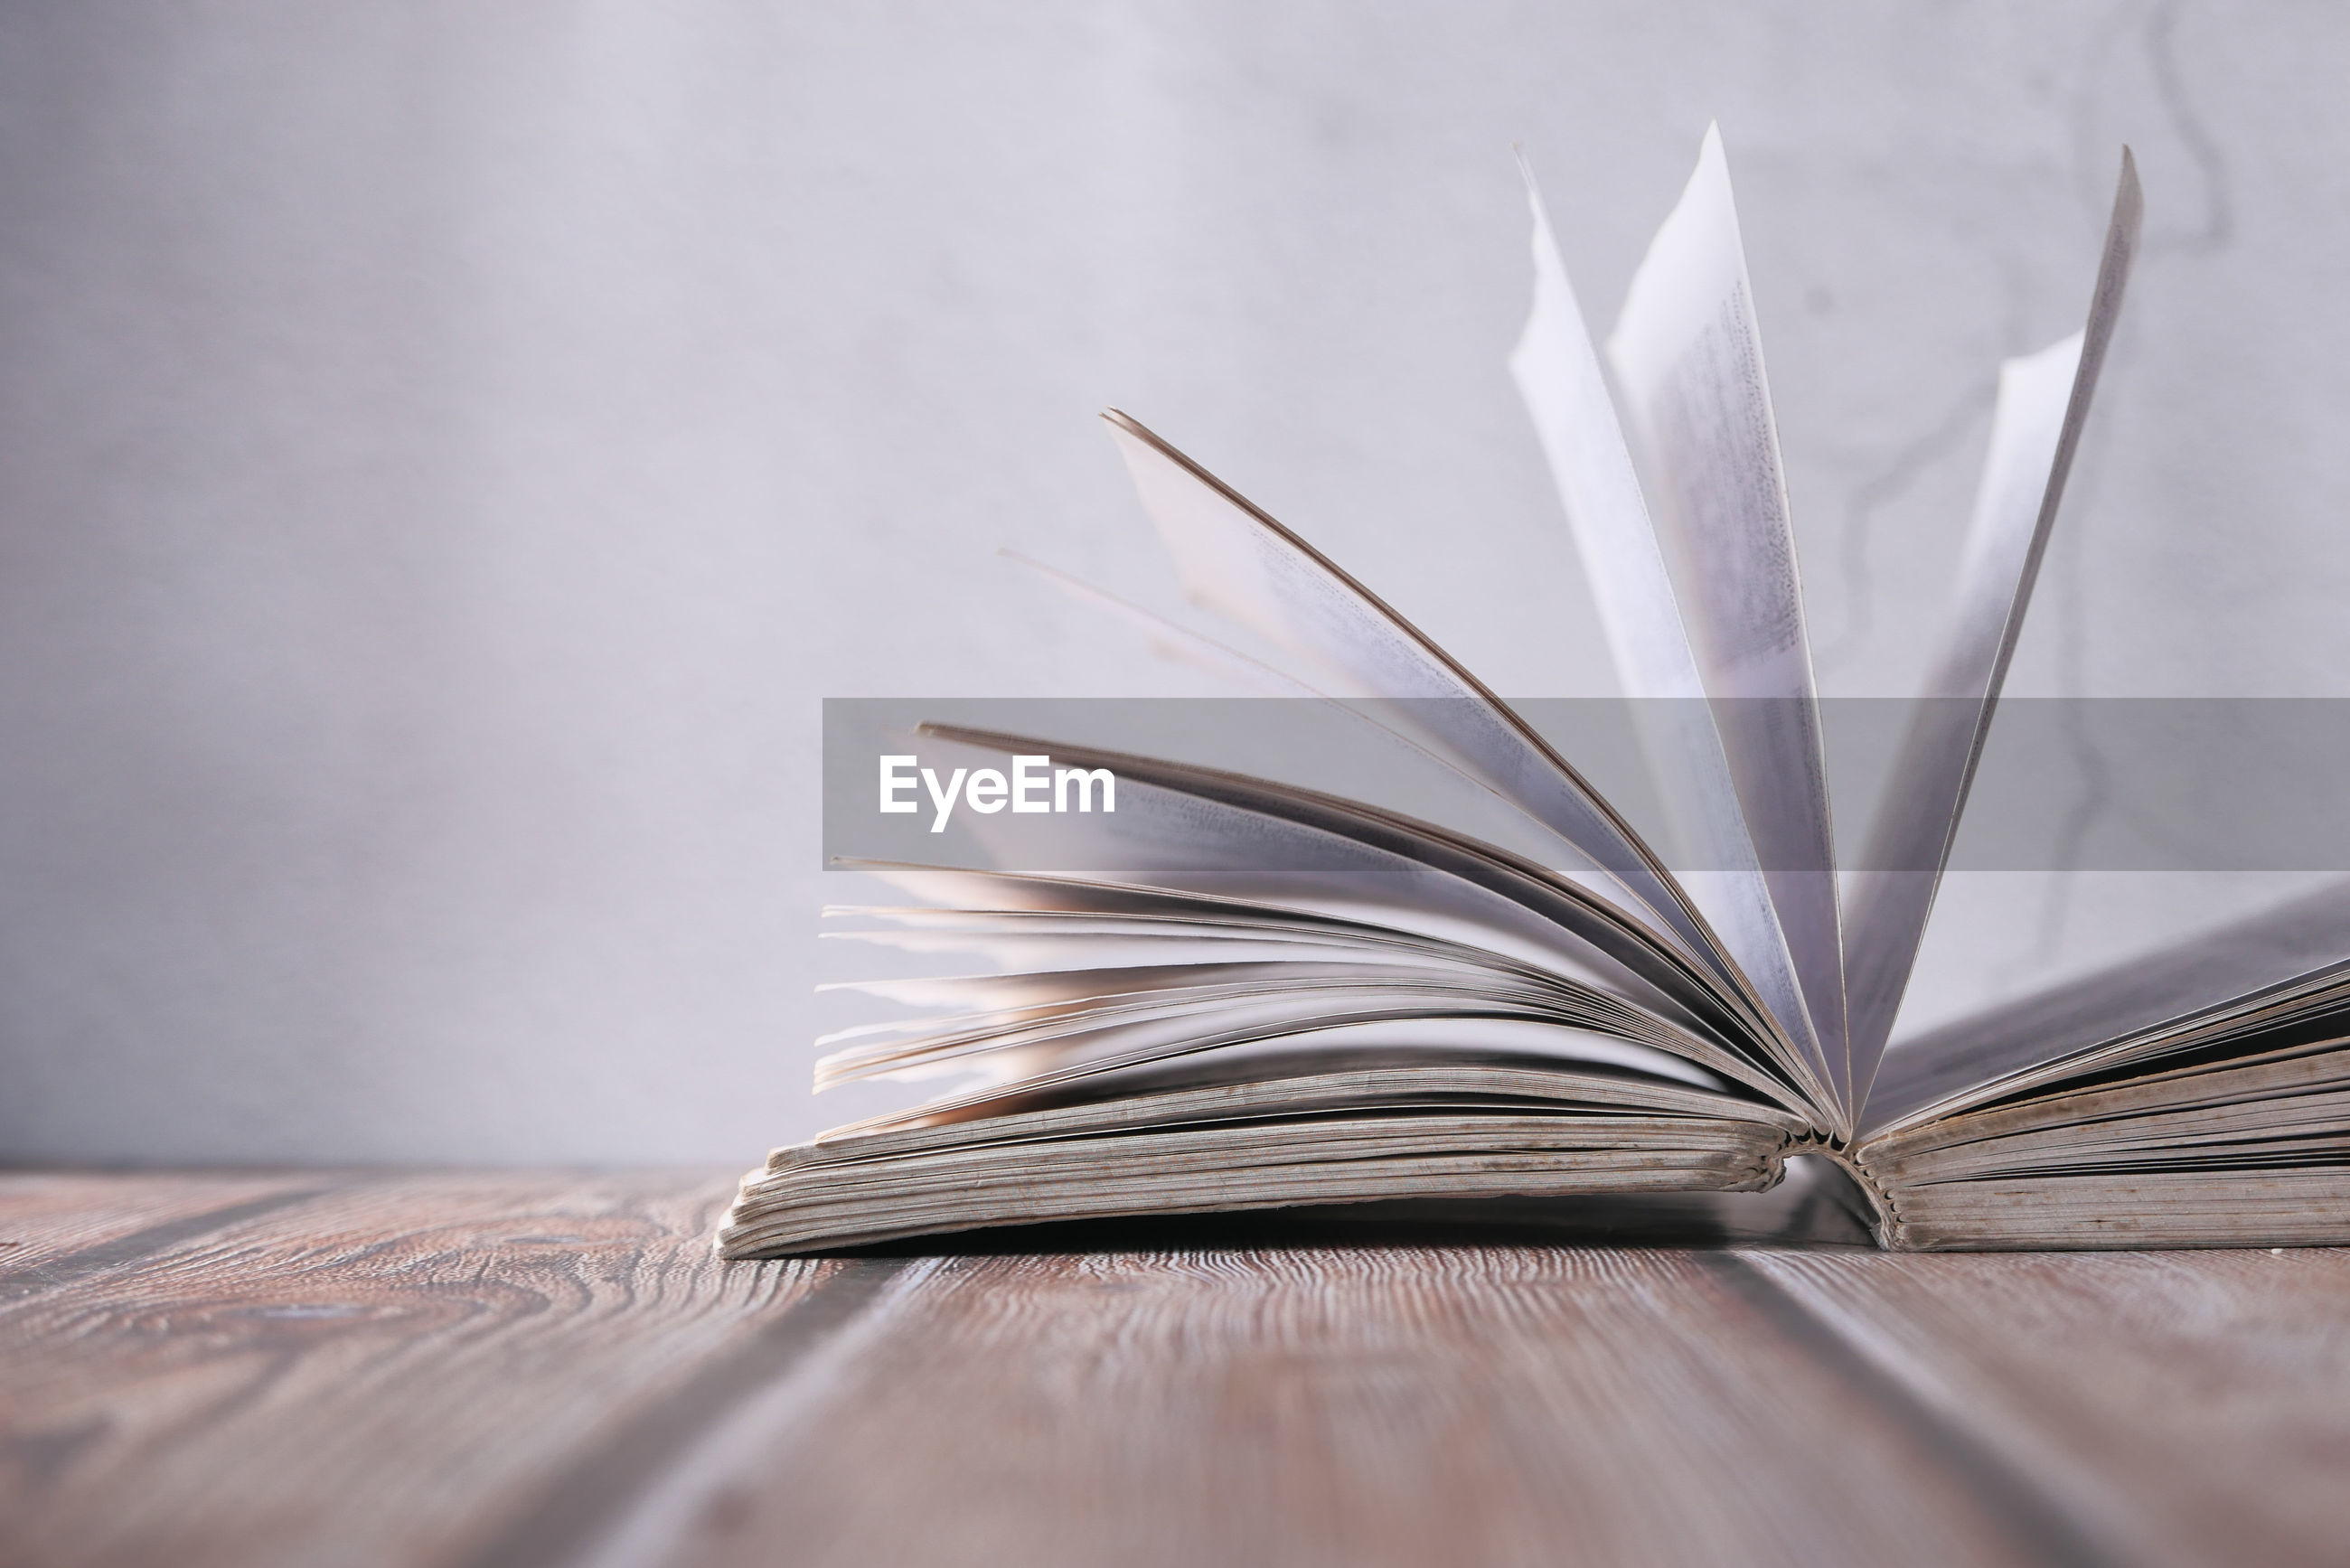 Close up of open book on table